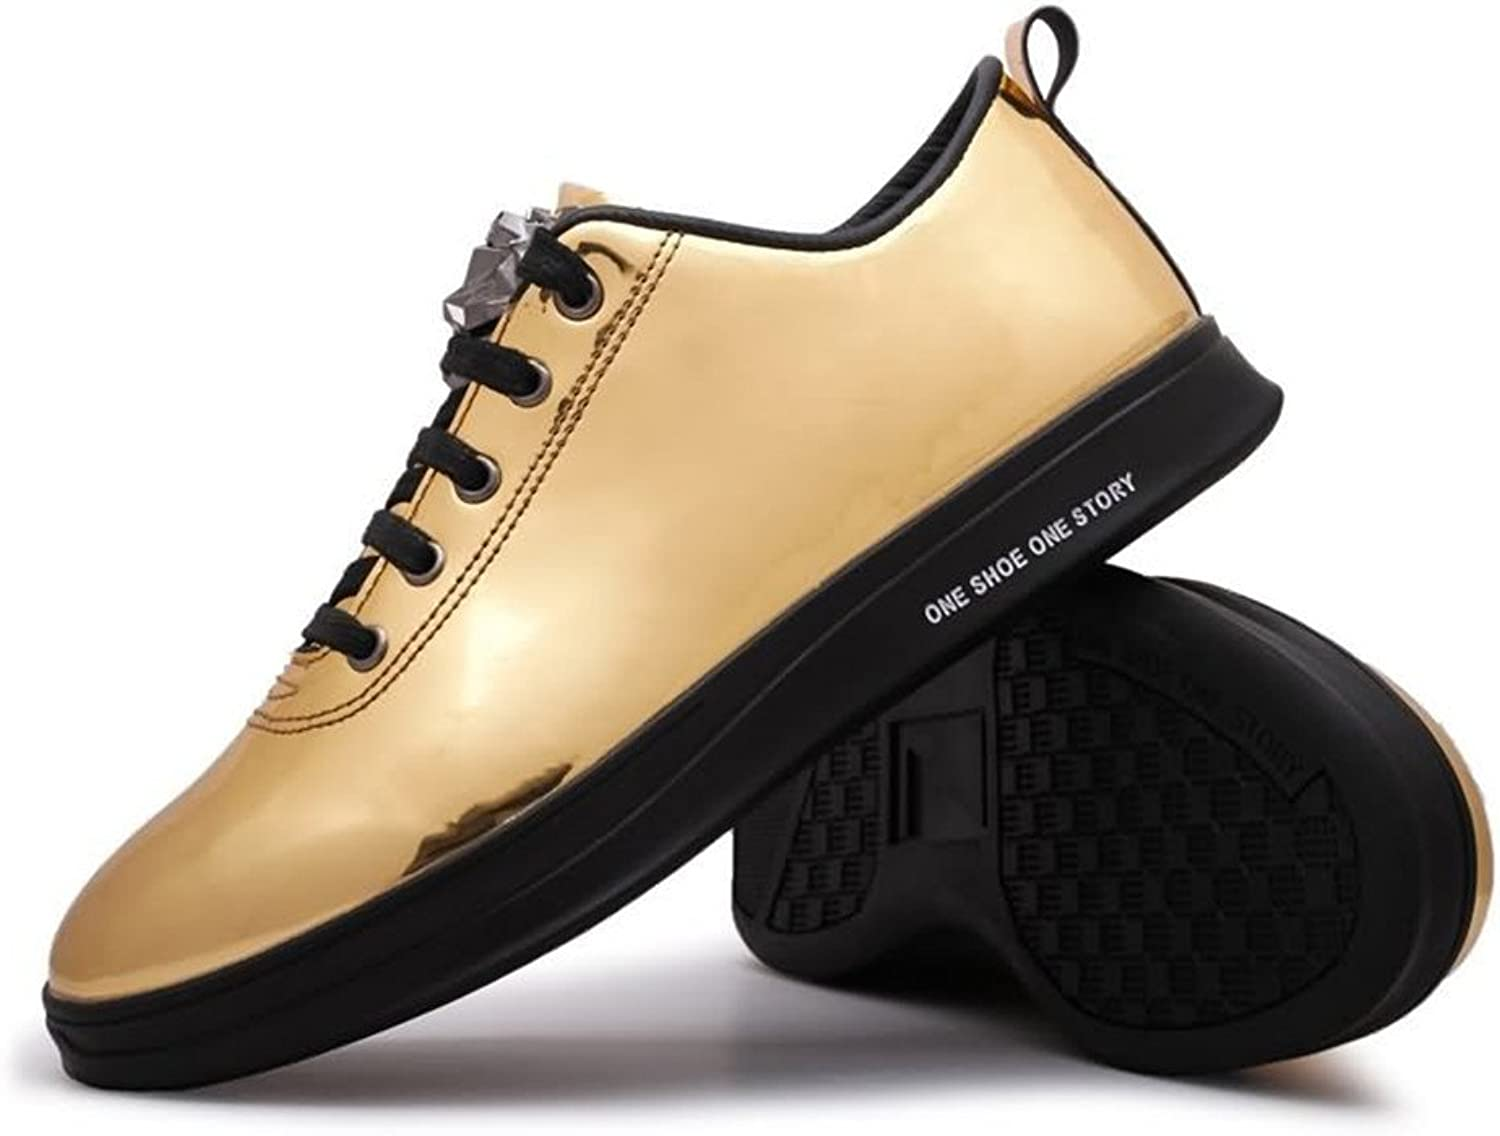 JIALUN-shoes New Men's Fashion Sneaker Flat Heel Lace Up Patent Leather Casual shoes